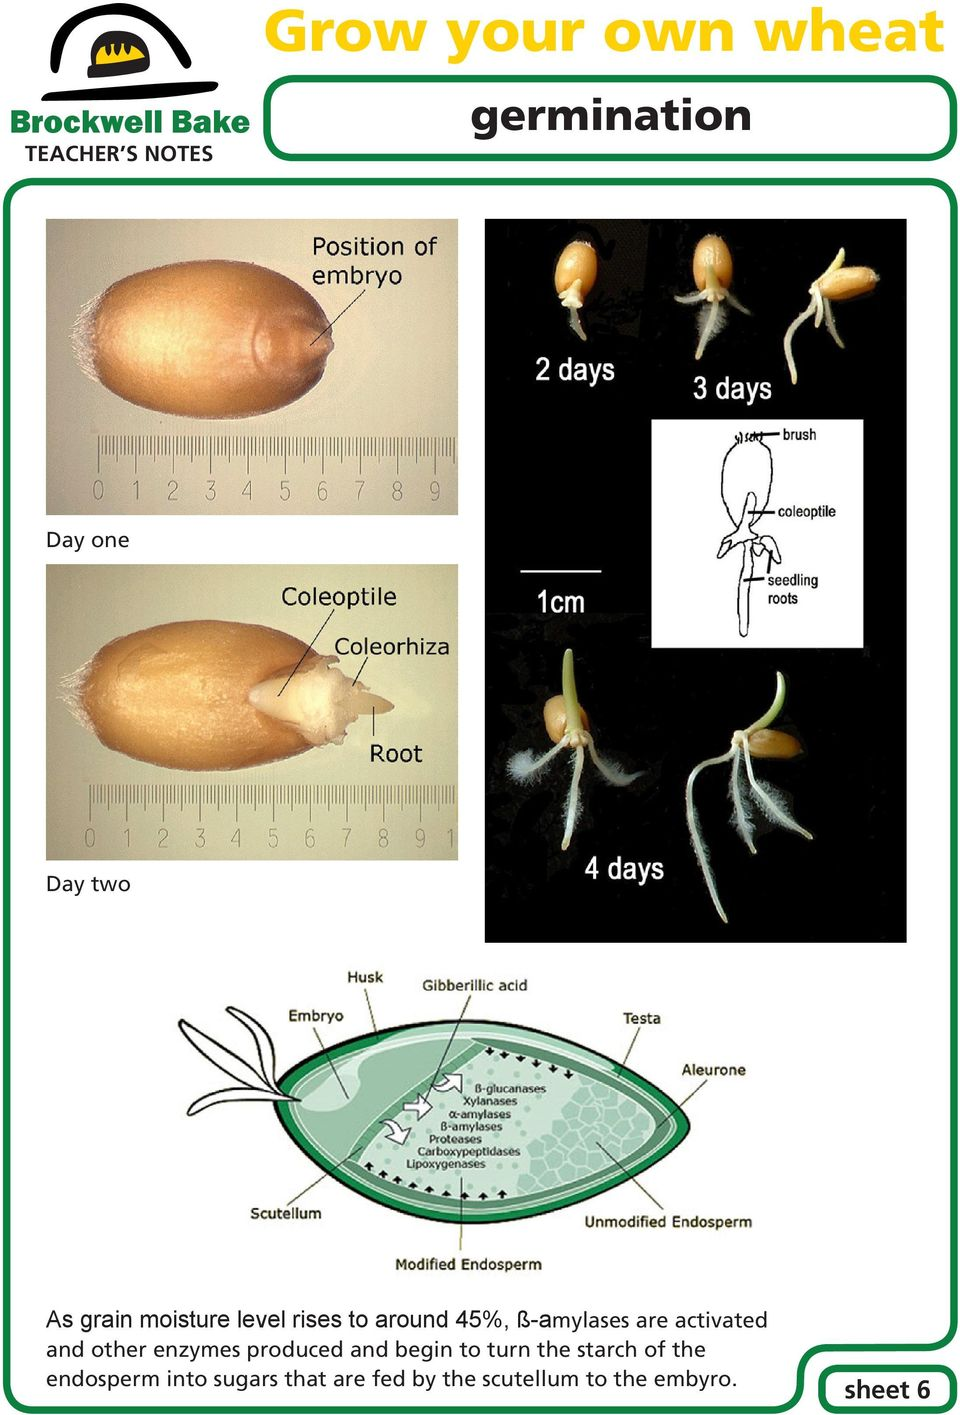 produced and begin to turn the starch of the endosperm